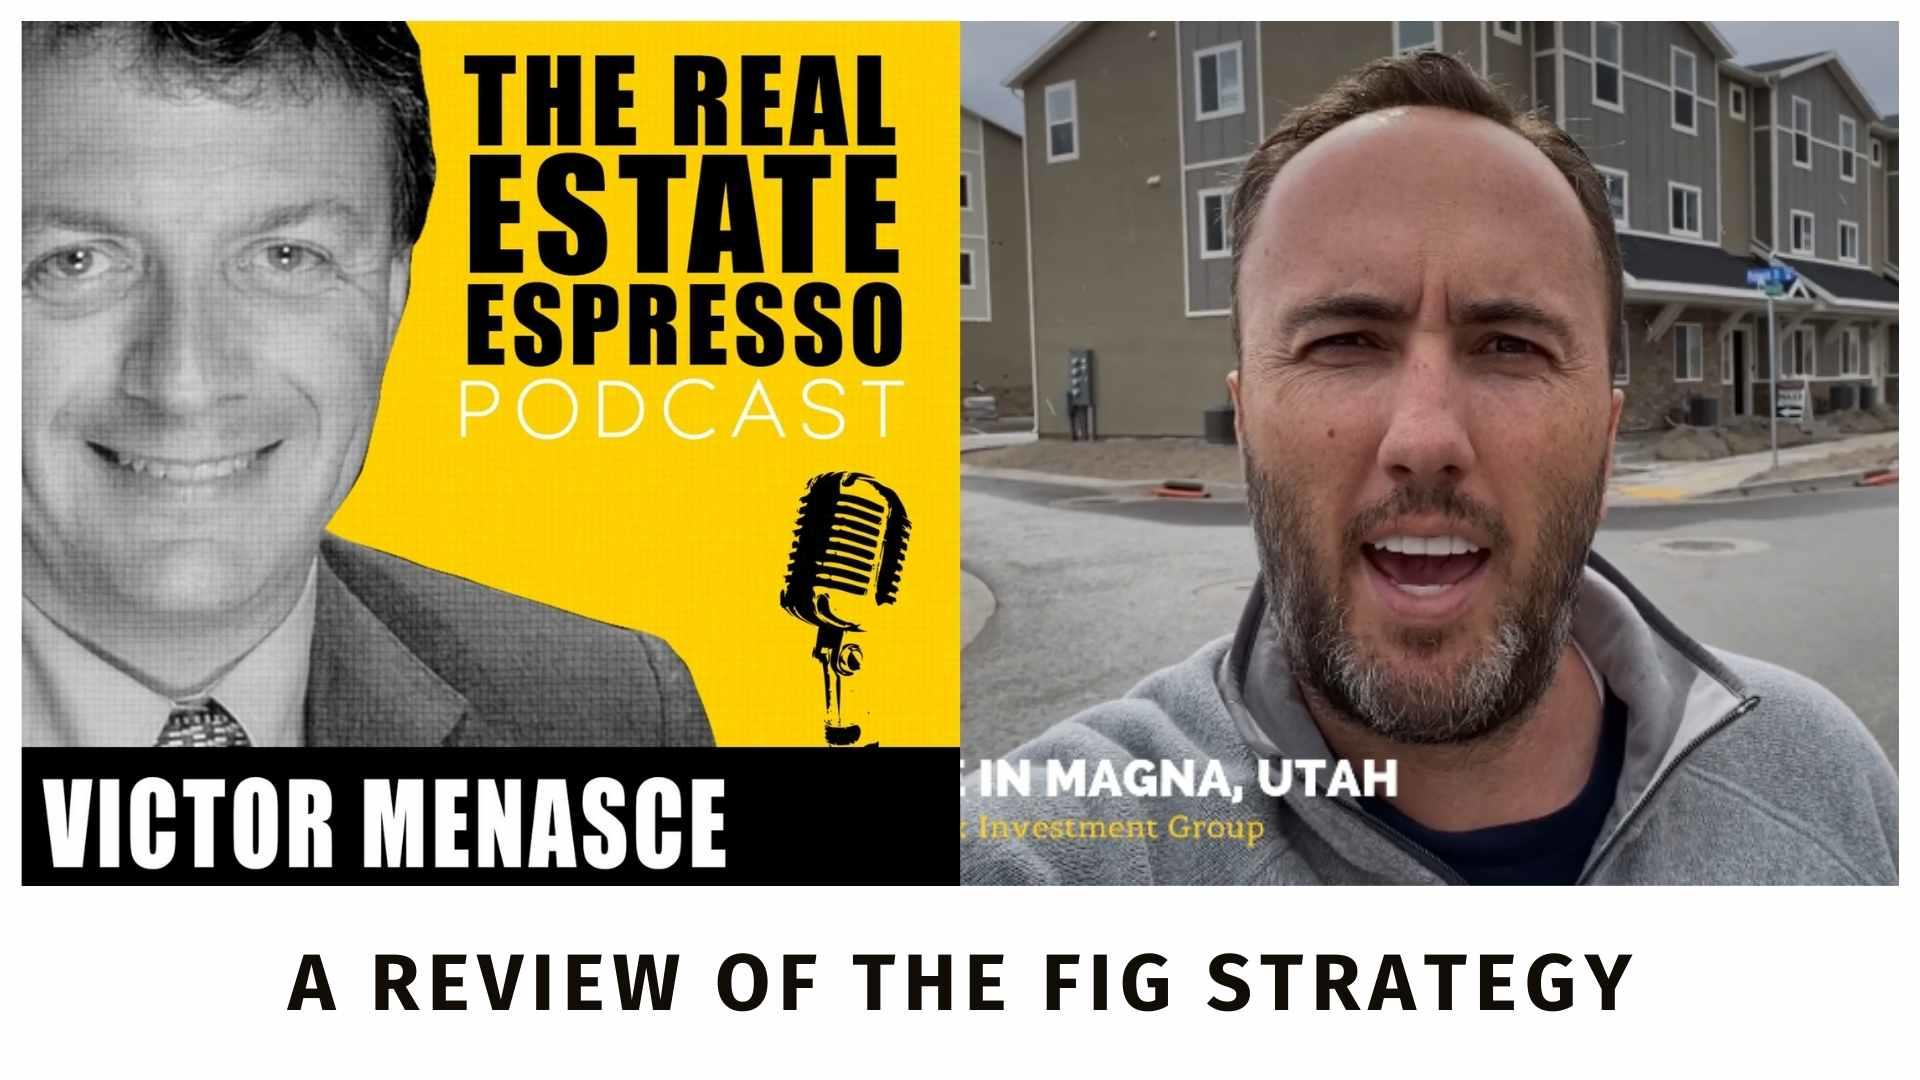 Steve Olson on the Real Estate Espresso Podcast